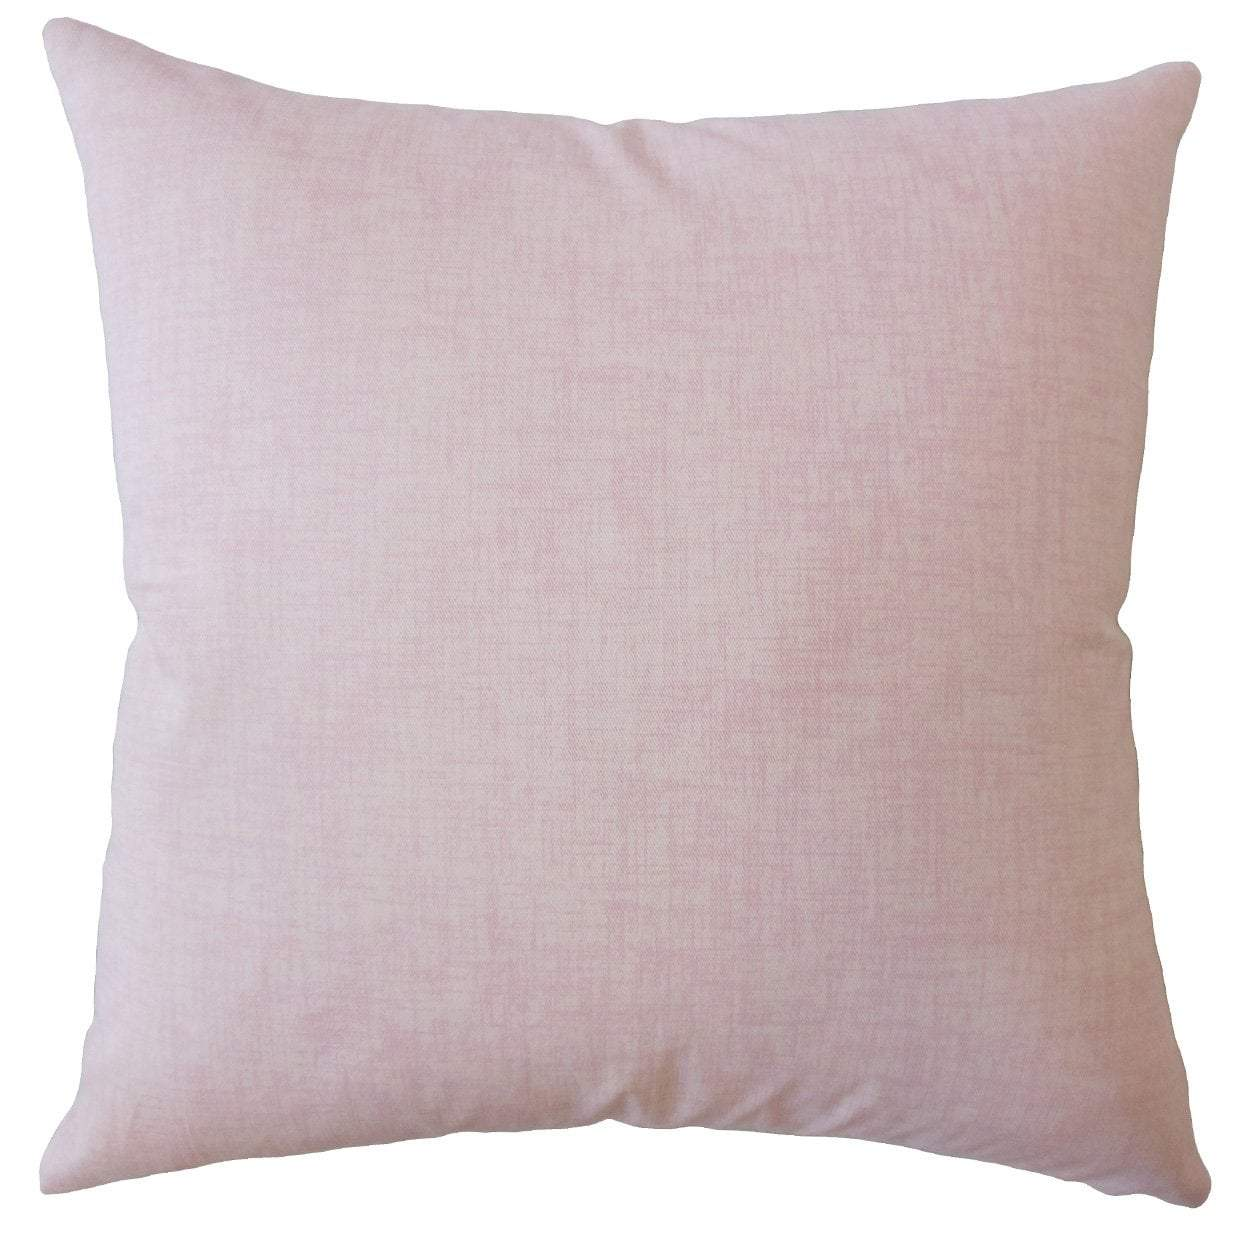 Moore Throw Pillow Cover